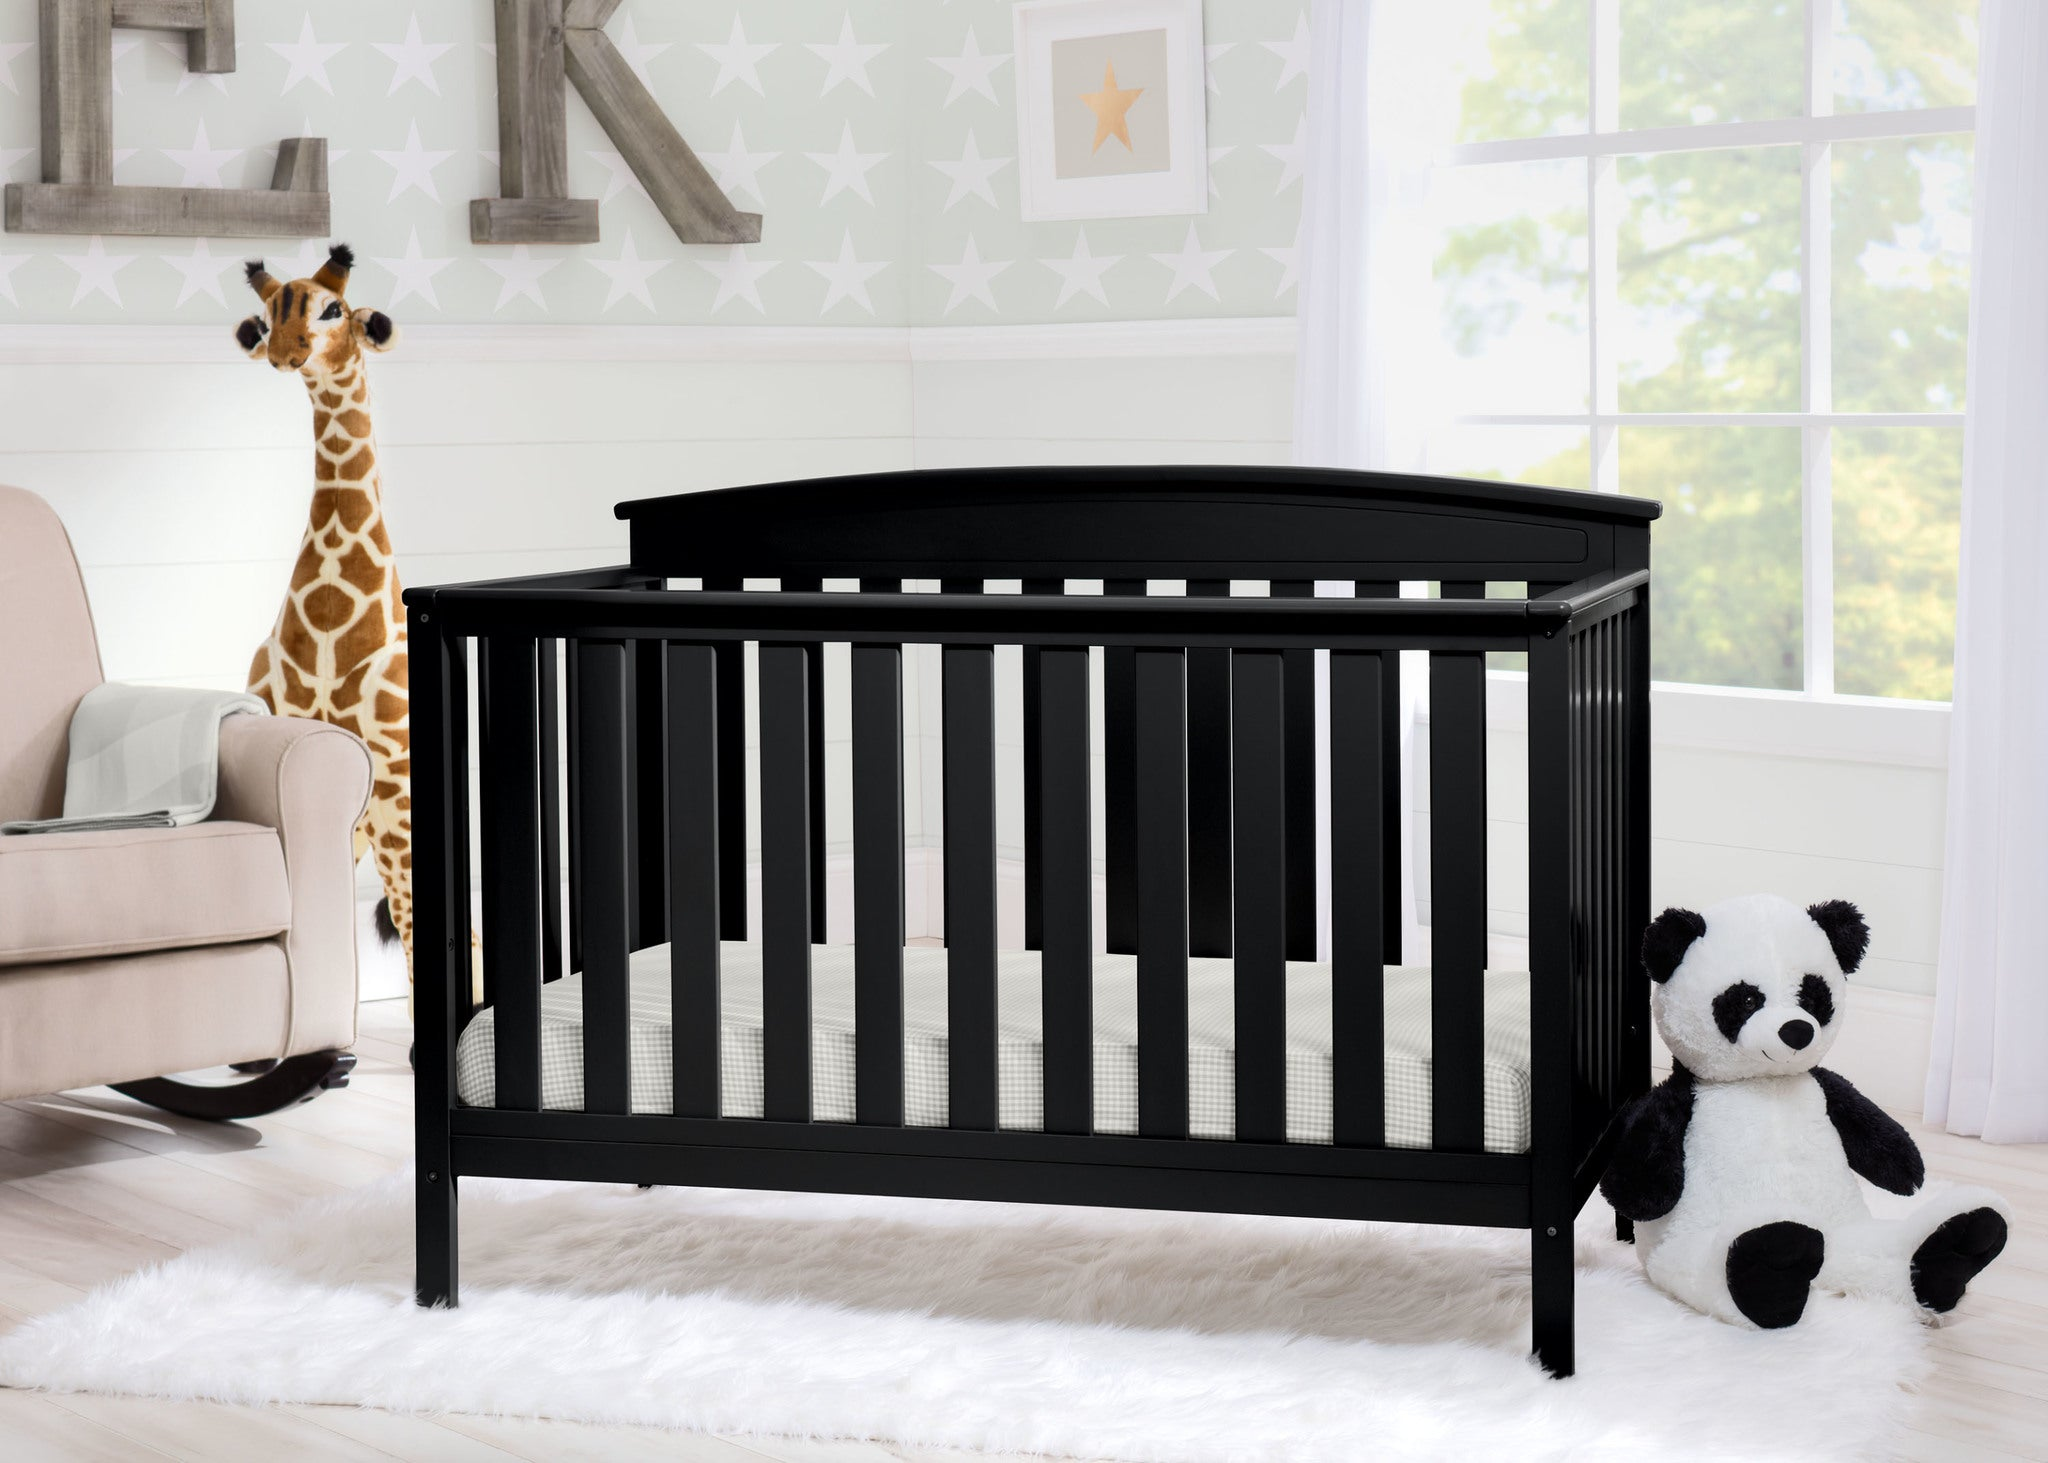 Gateway 4 in 1 Crib Black (001)